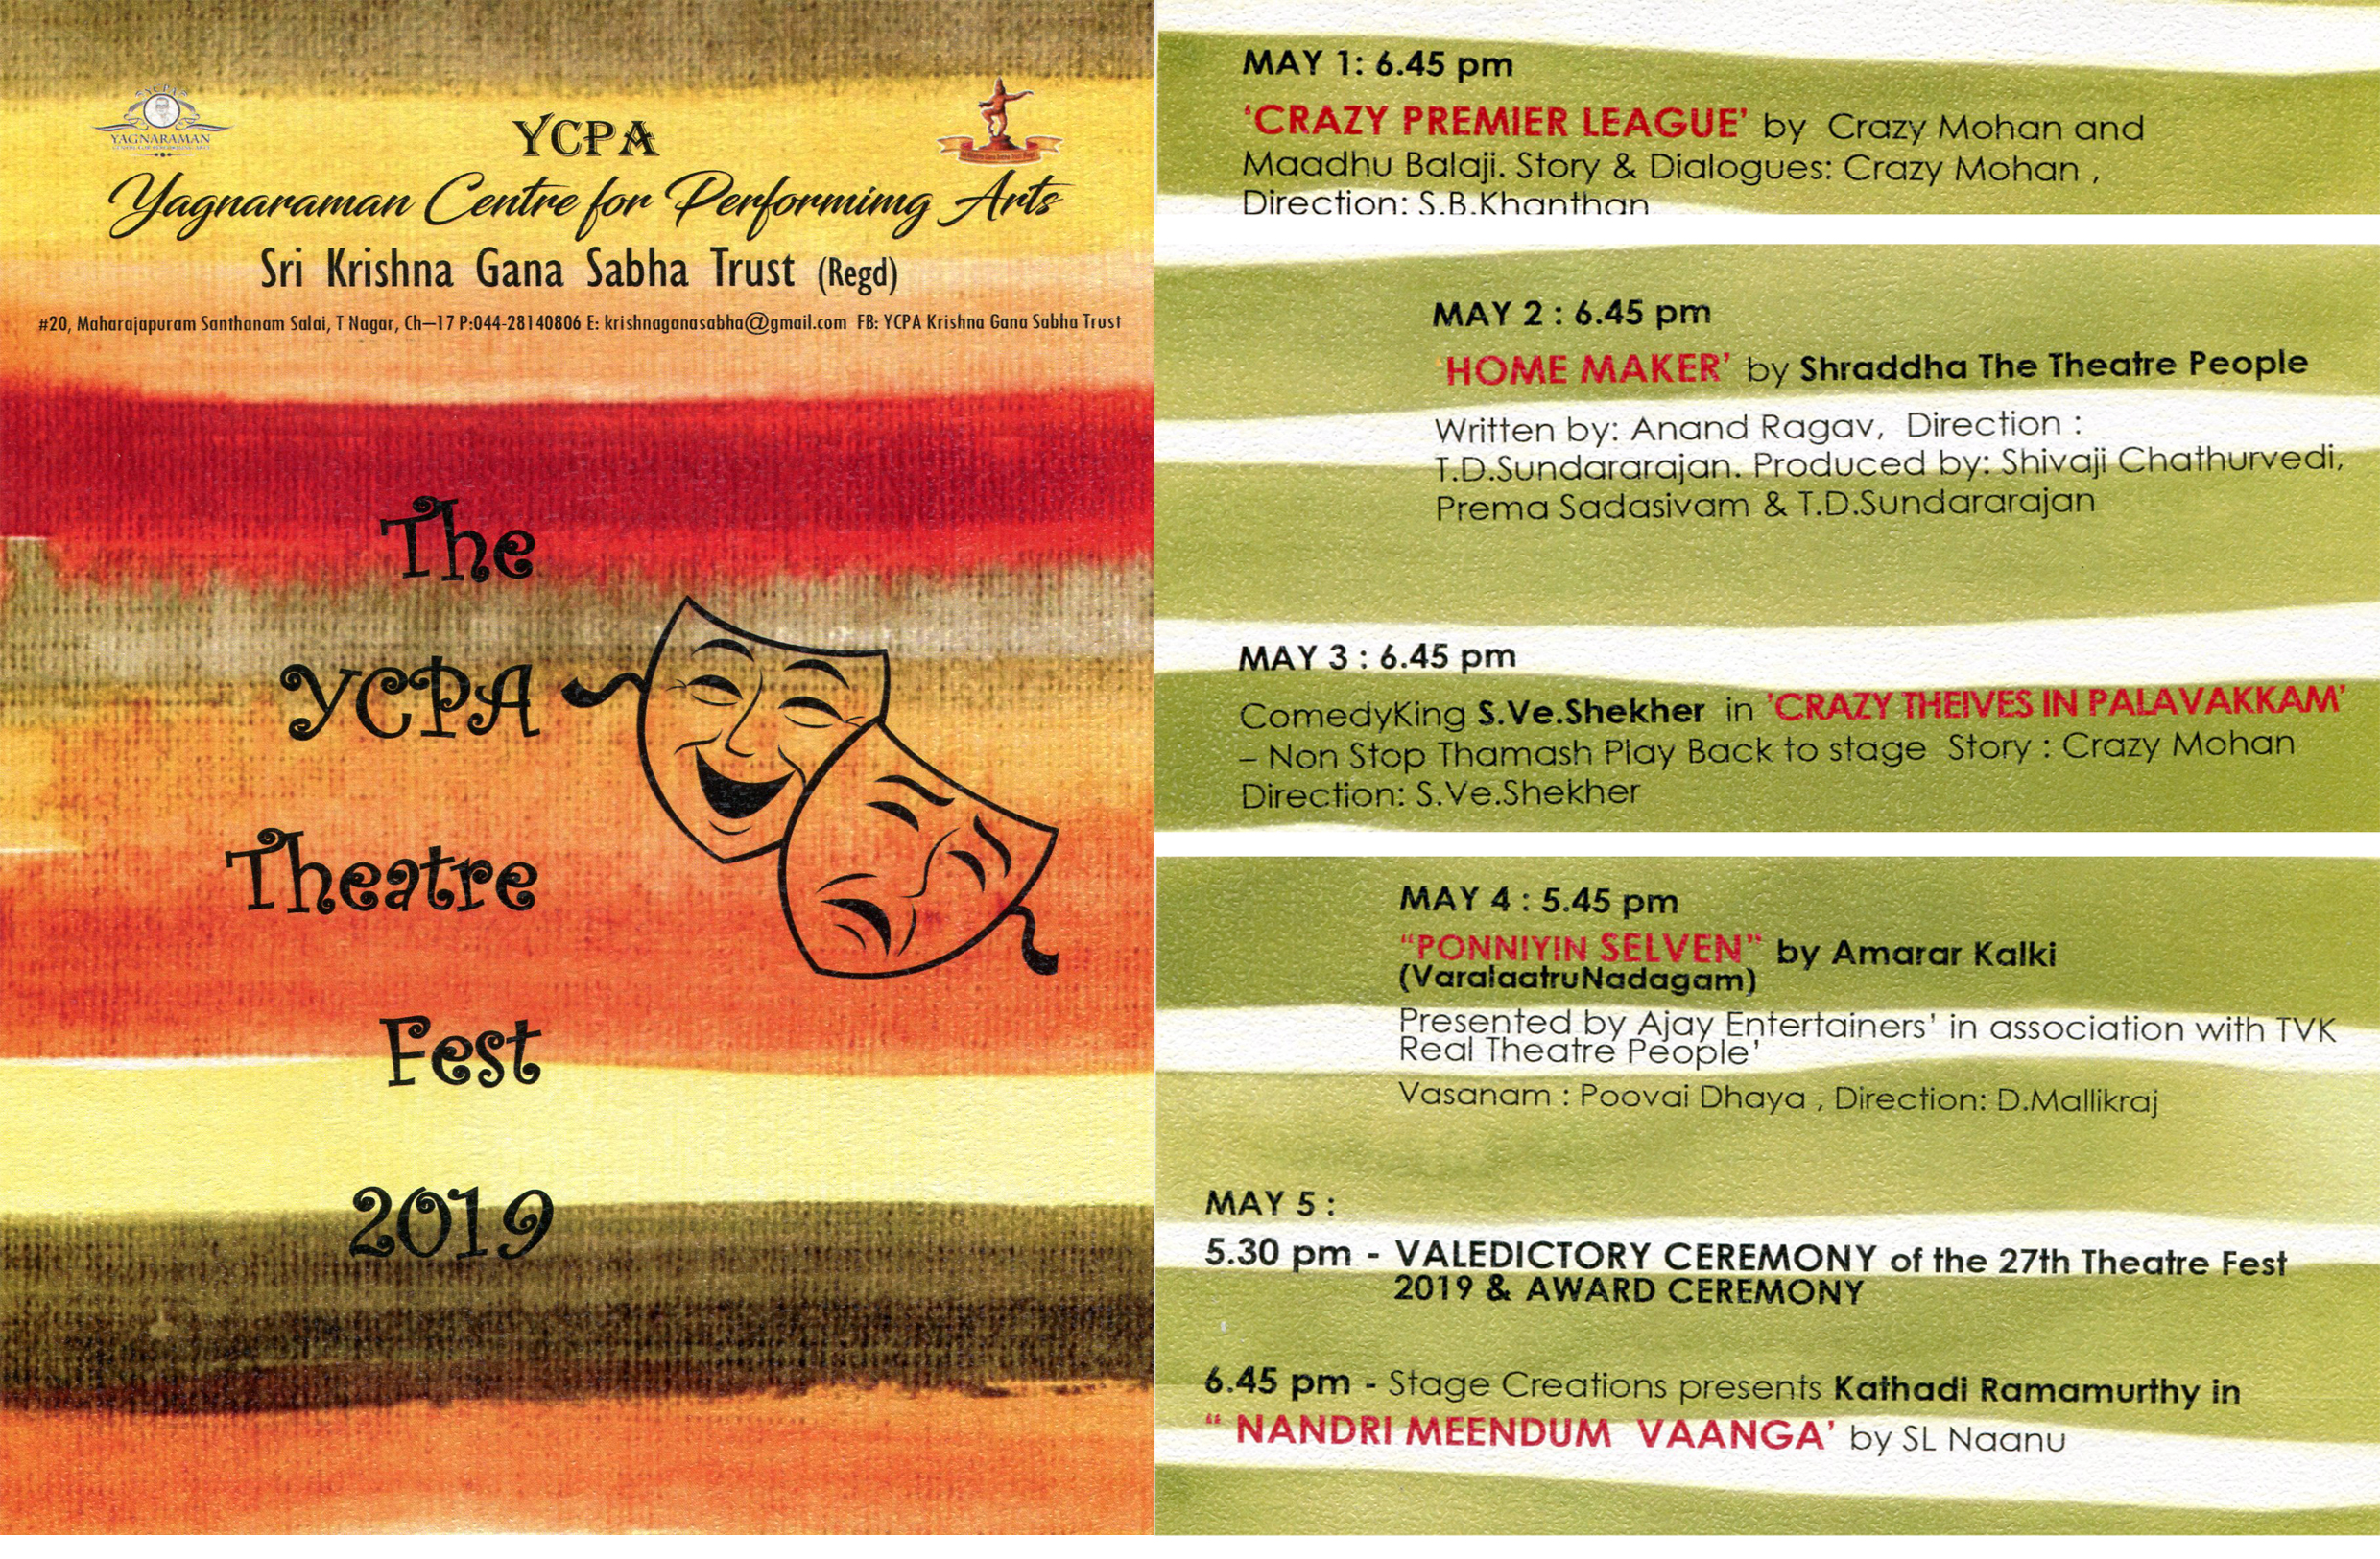 The YCPA Theate Fest 2019